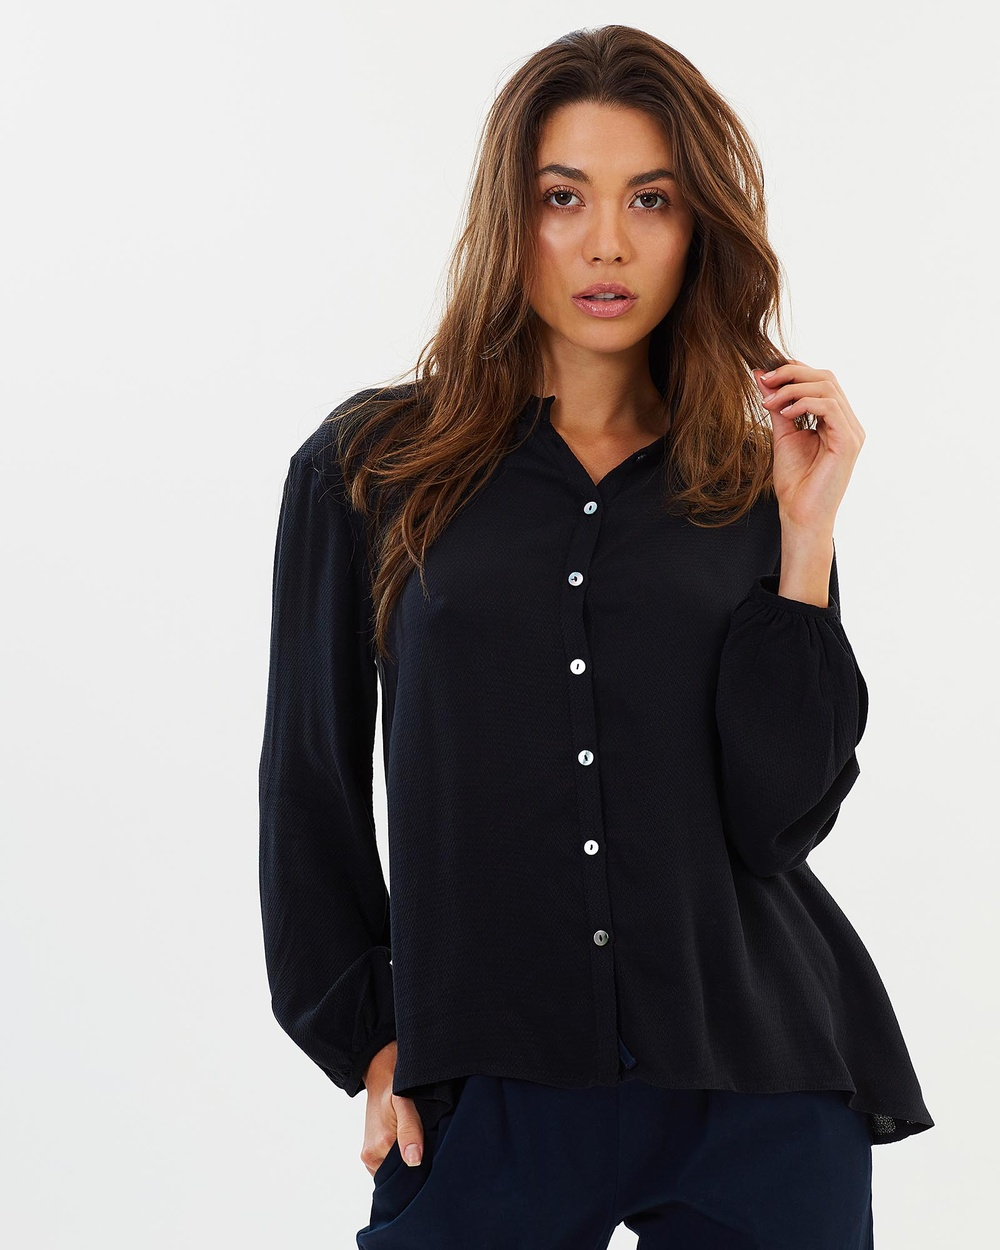 Photo of Privilege Privilege Ever After Swing Blouse Tops Black Ever After Swing Blouse - Striking the perfect balance between playful and professional, Privilege design flattering separates that boast fashion-forward flourishes that set them apart from the rest. Their Ever After Swing Blouse blends a traditional button-down with more whimsical details like blouson sleeves and relaxed, drapey silhouette. We love this blouse partially unbutton with a lace camisole peakin